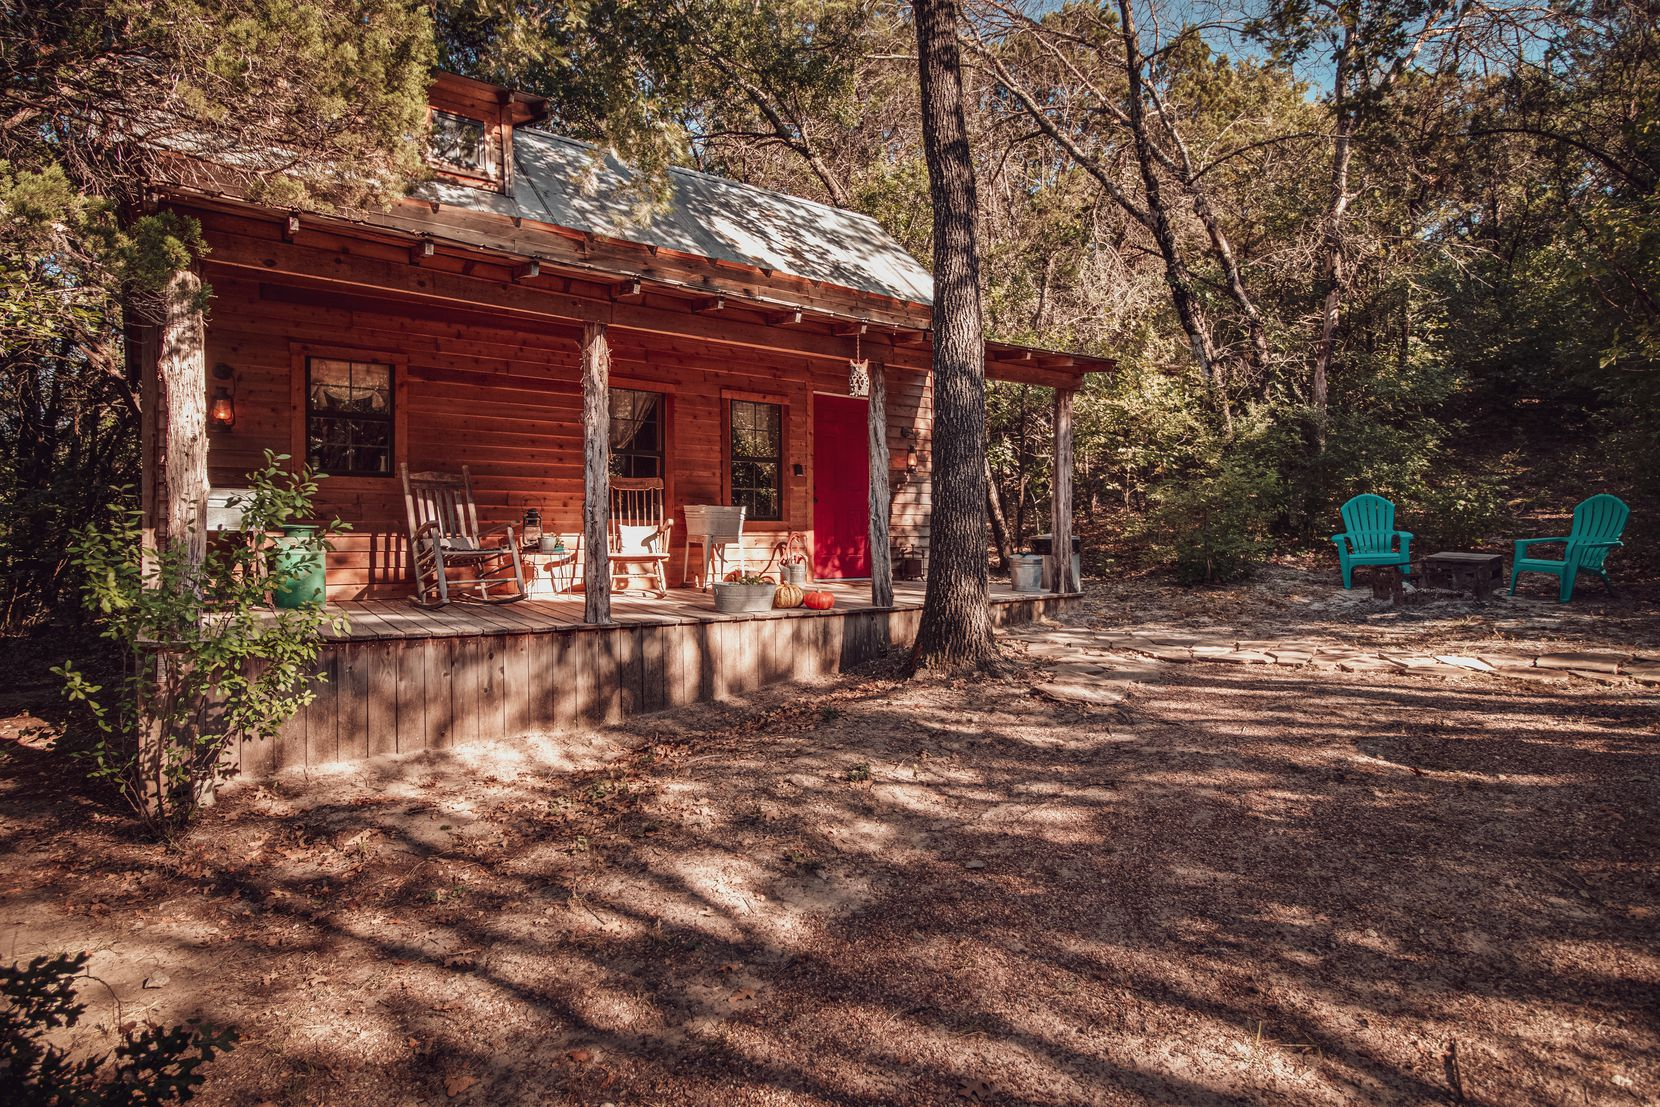 The Granbury Cabins at Windy Ridge are set in tree-covered, secluded sites on a 10-acre property with hiking trails and space to unwind.